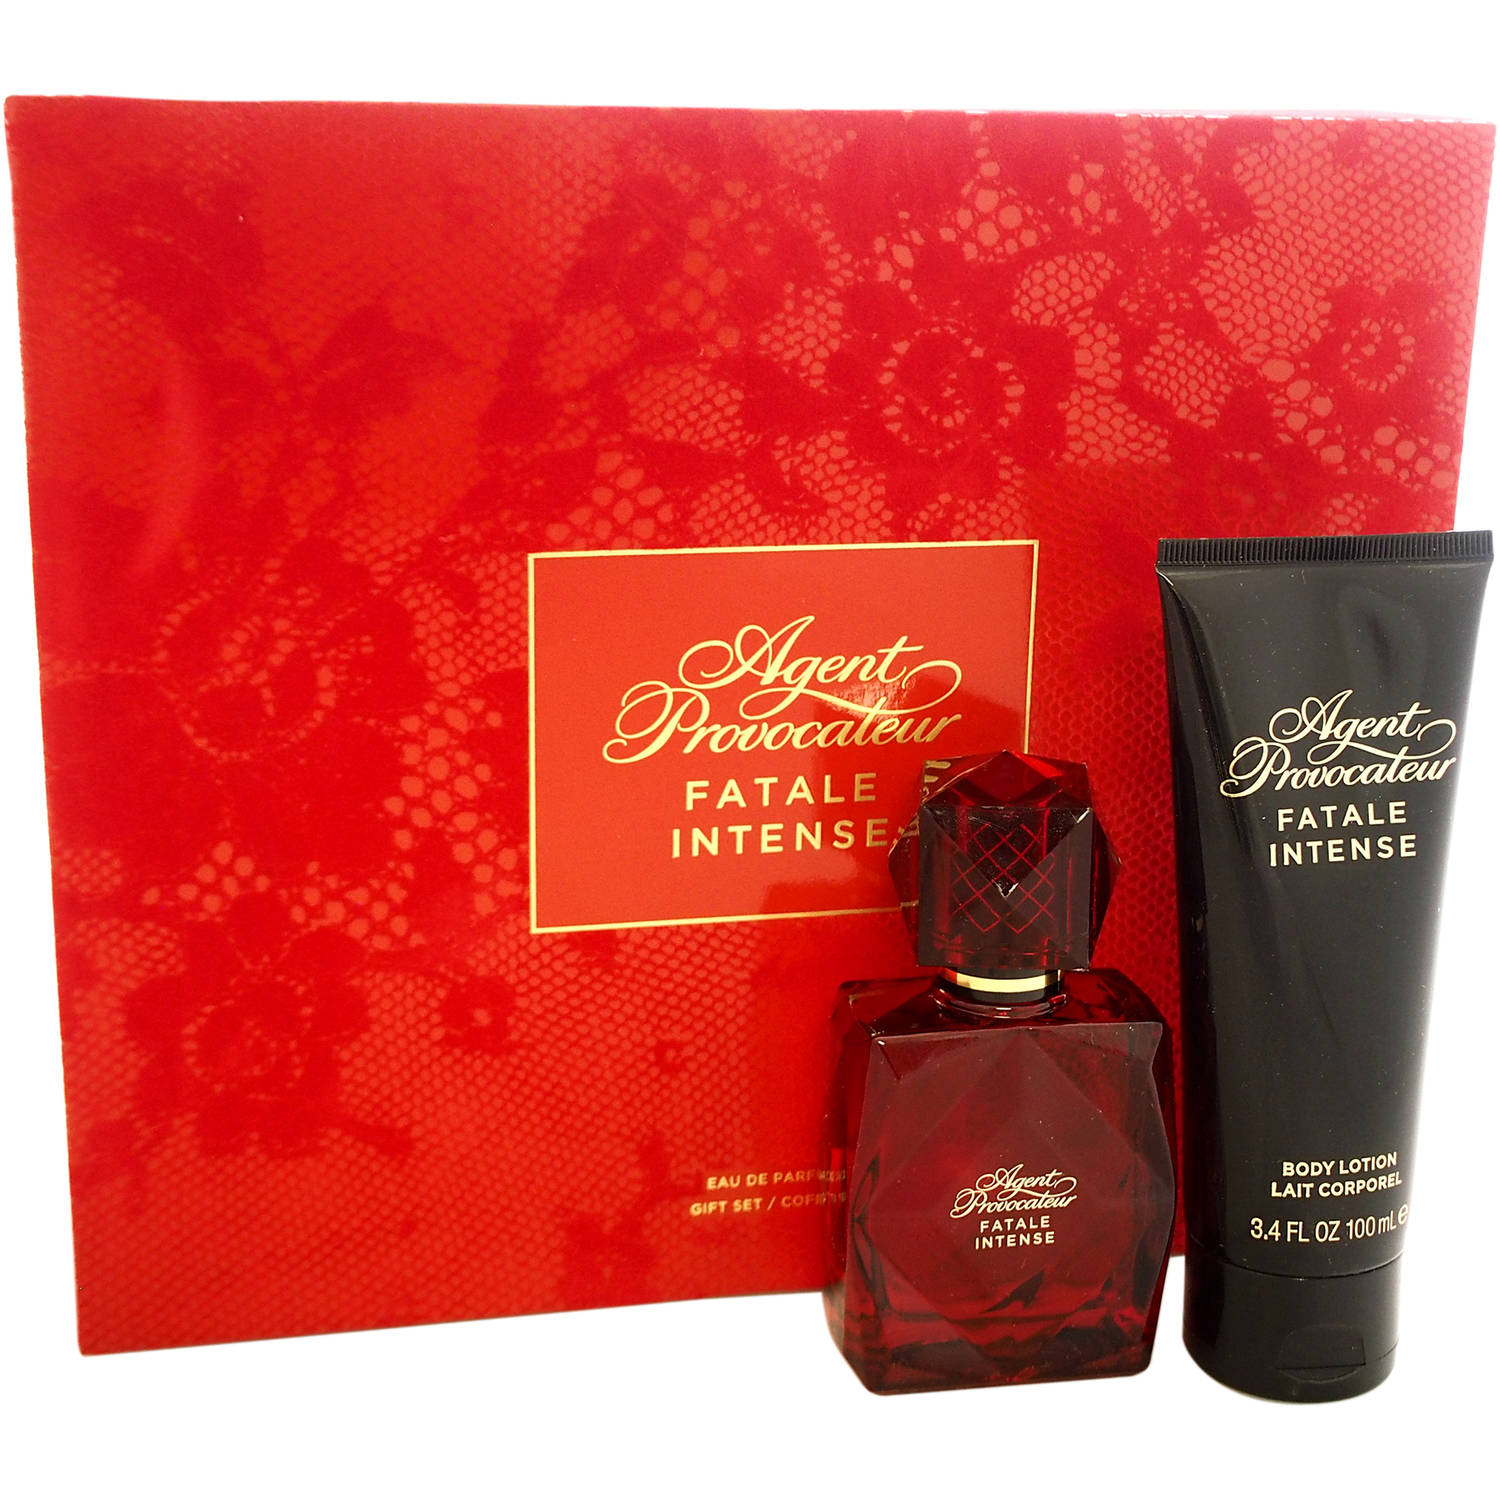 Agent Provocateur Fatale Intense by Agent Provocateur for Women - 2 Pc Gift Set 1.7oz EDP Spray, 3.4oz Body Lotion